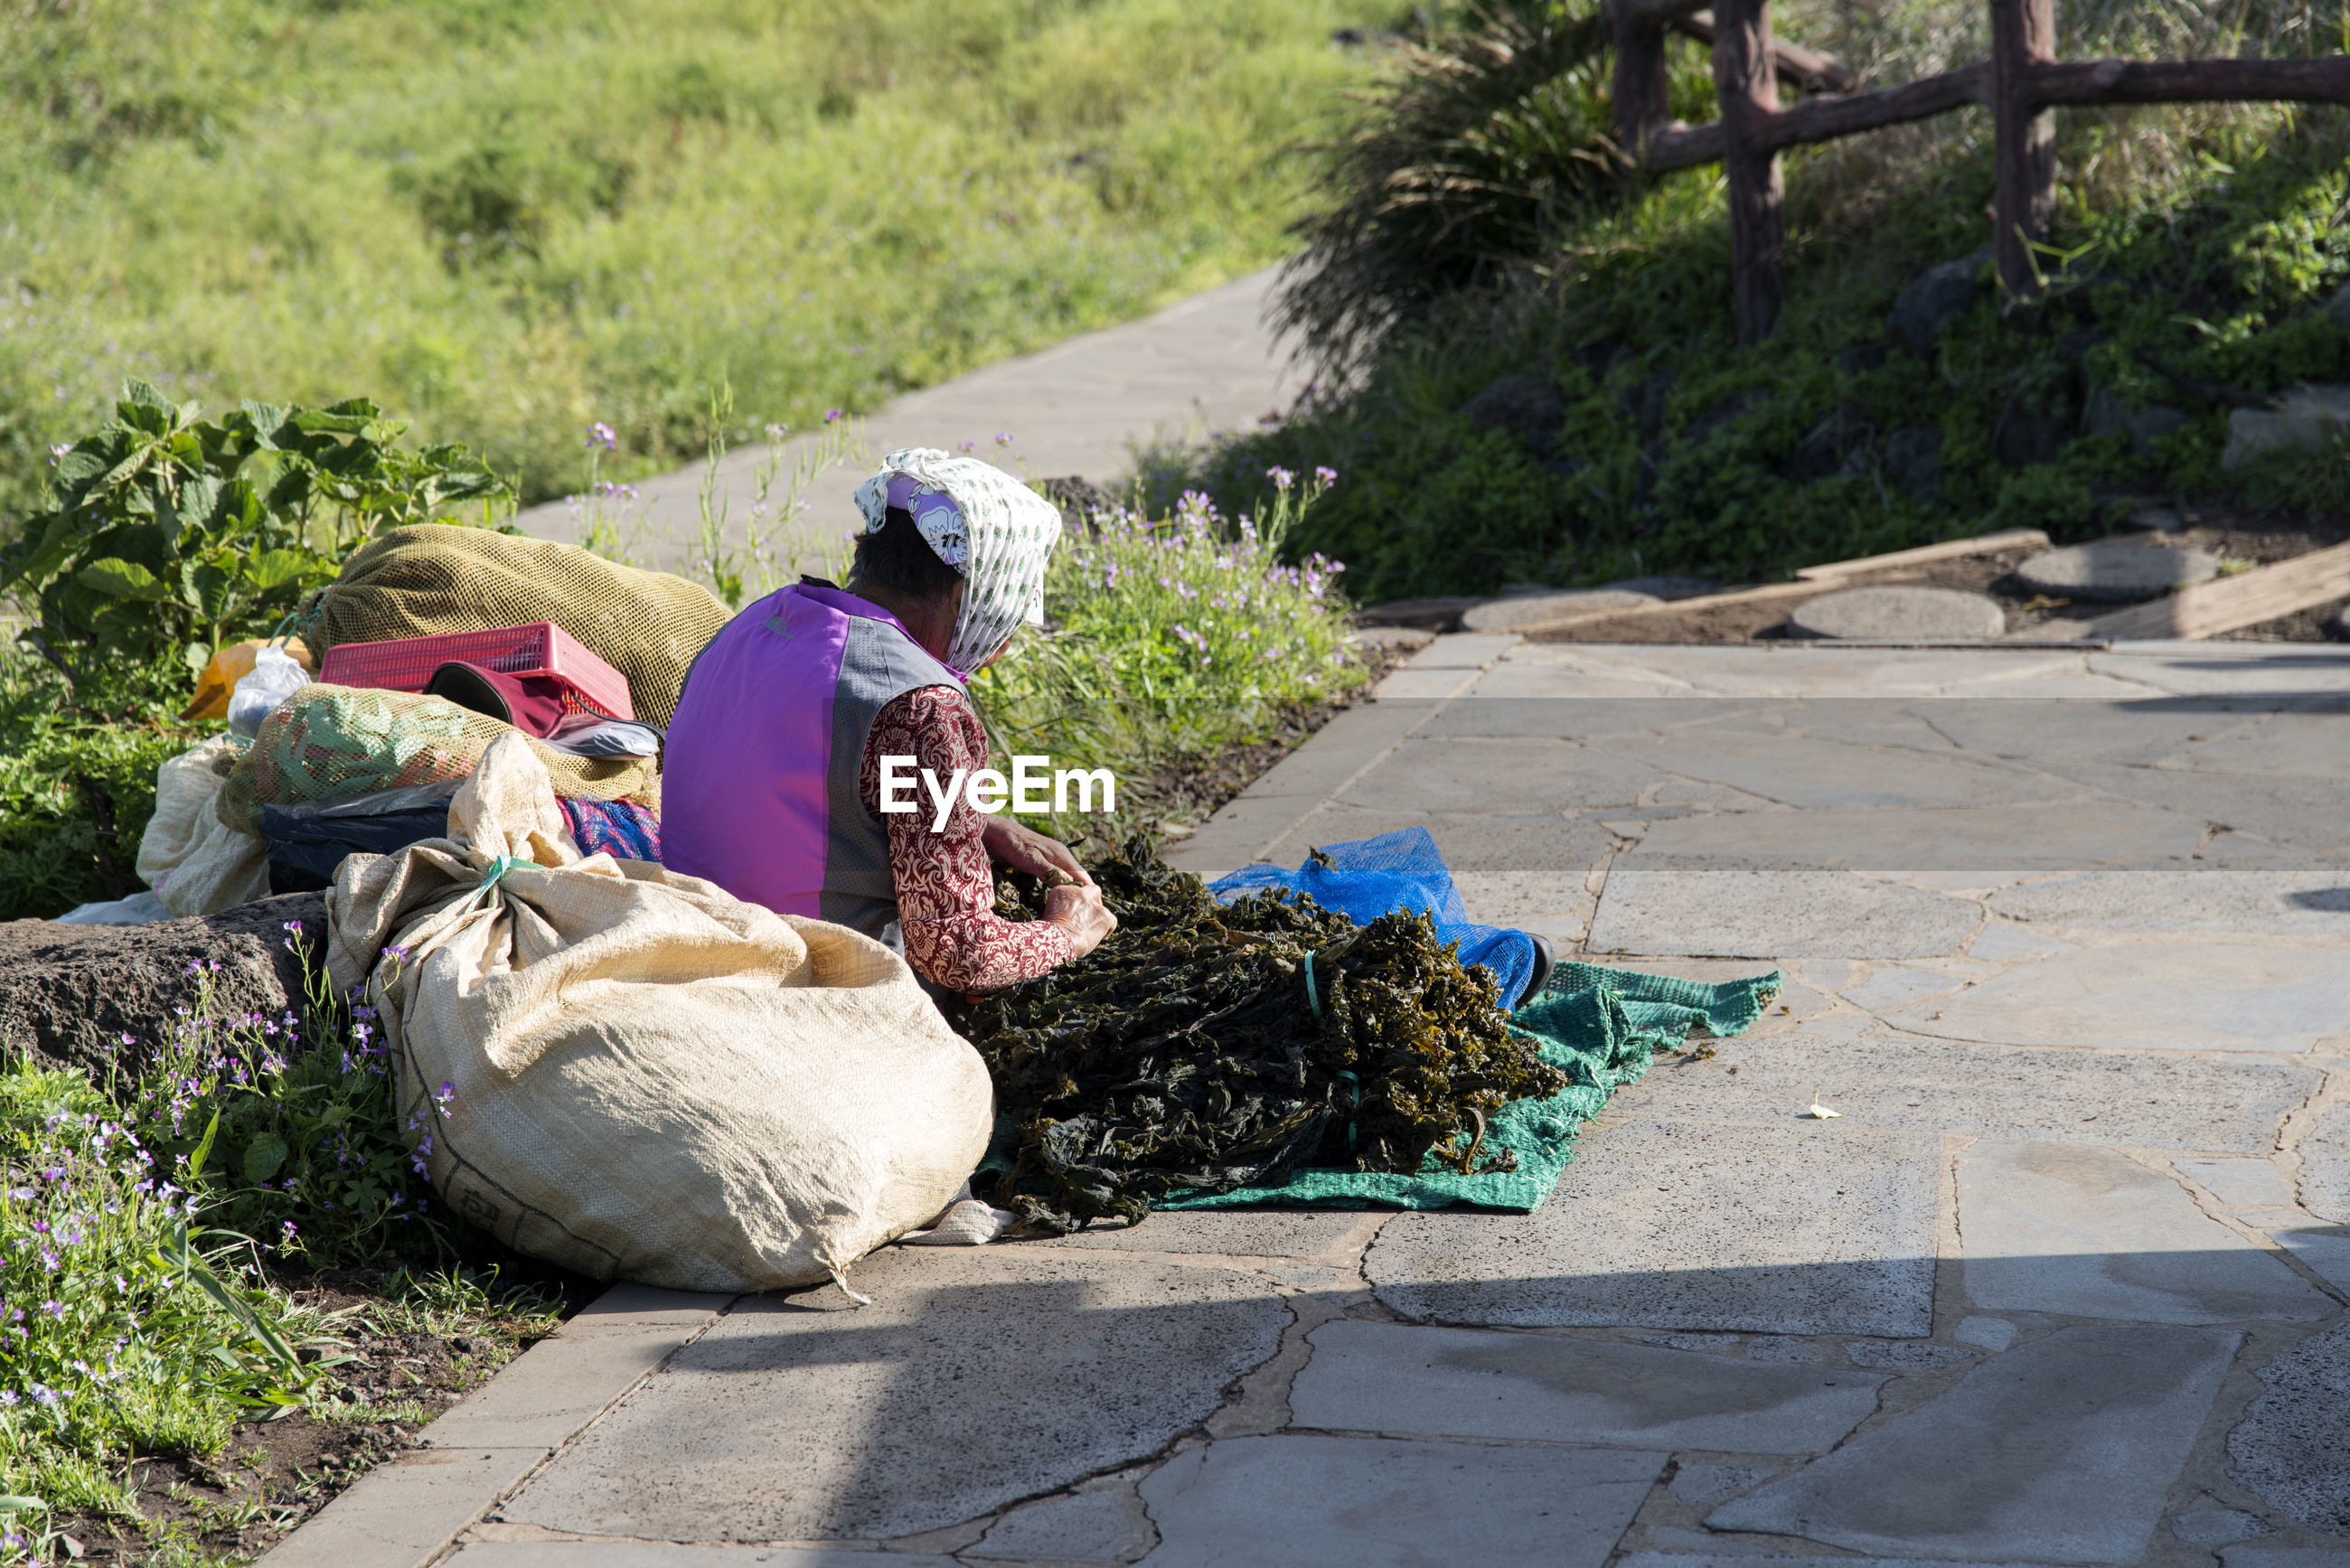 Woman selling sea weed while sitting on footpath